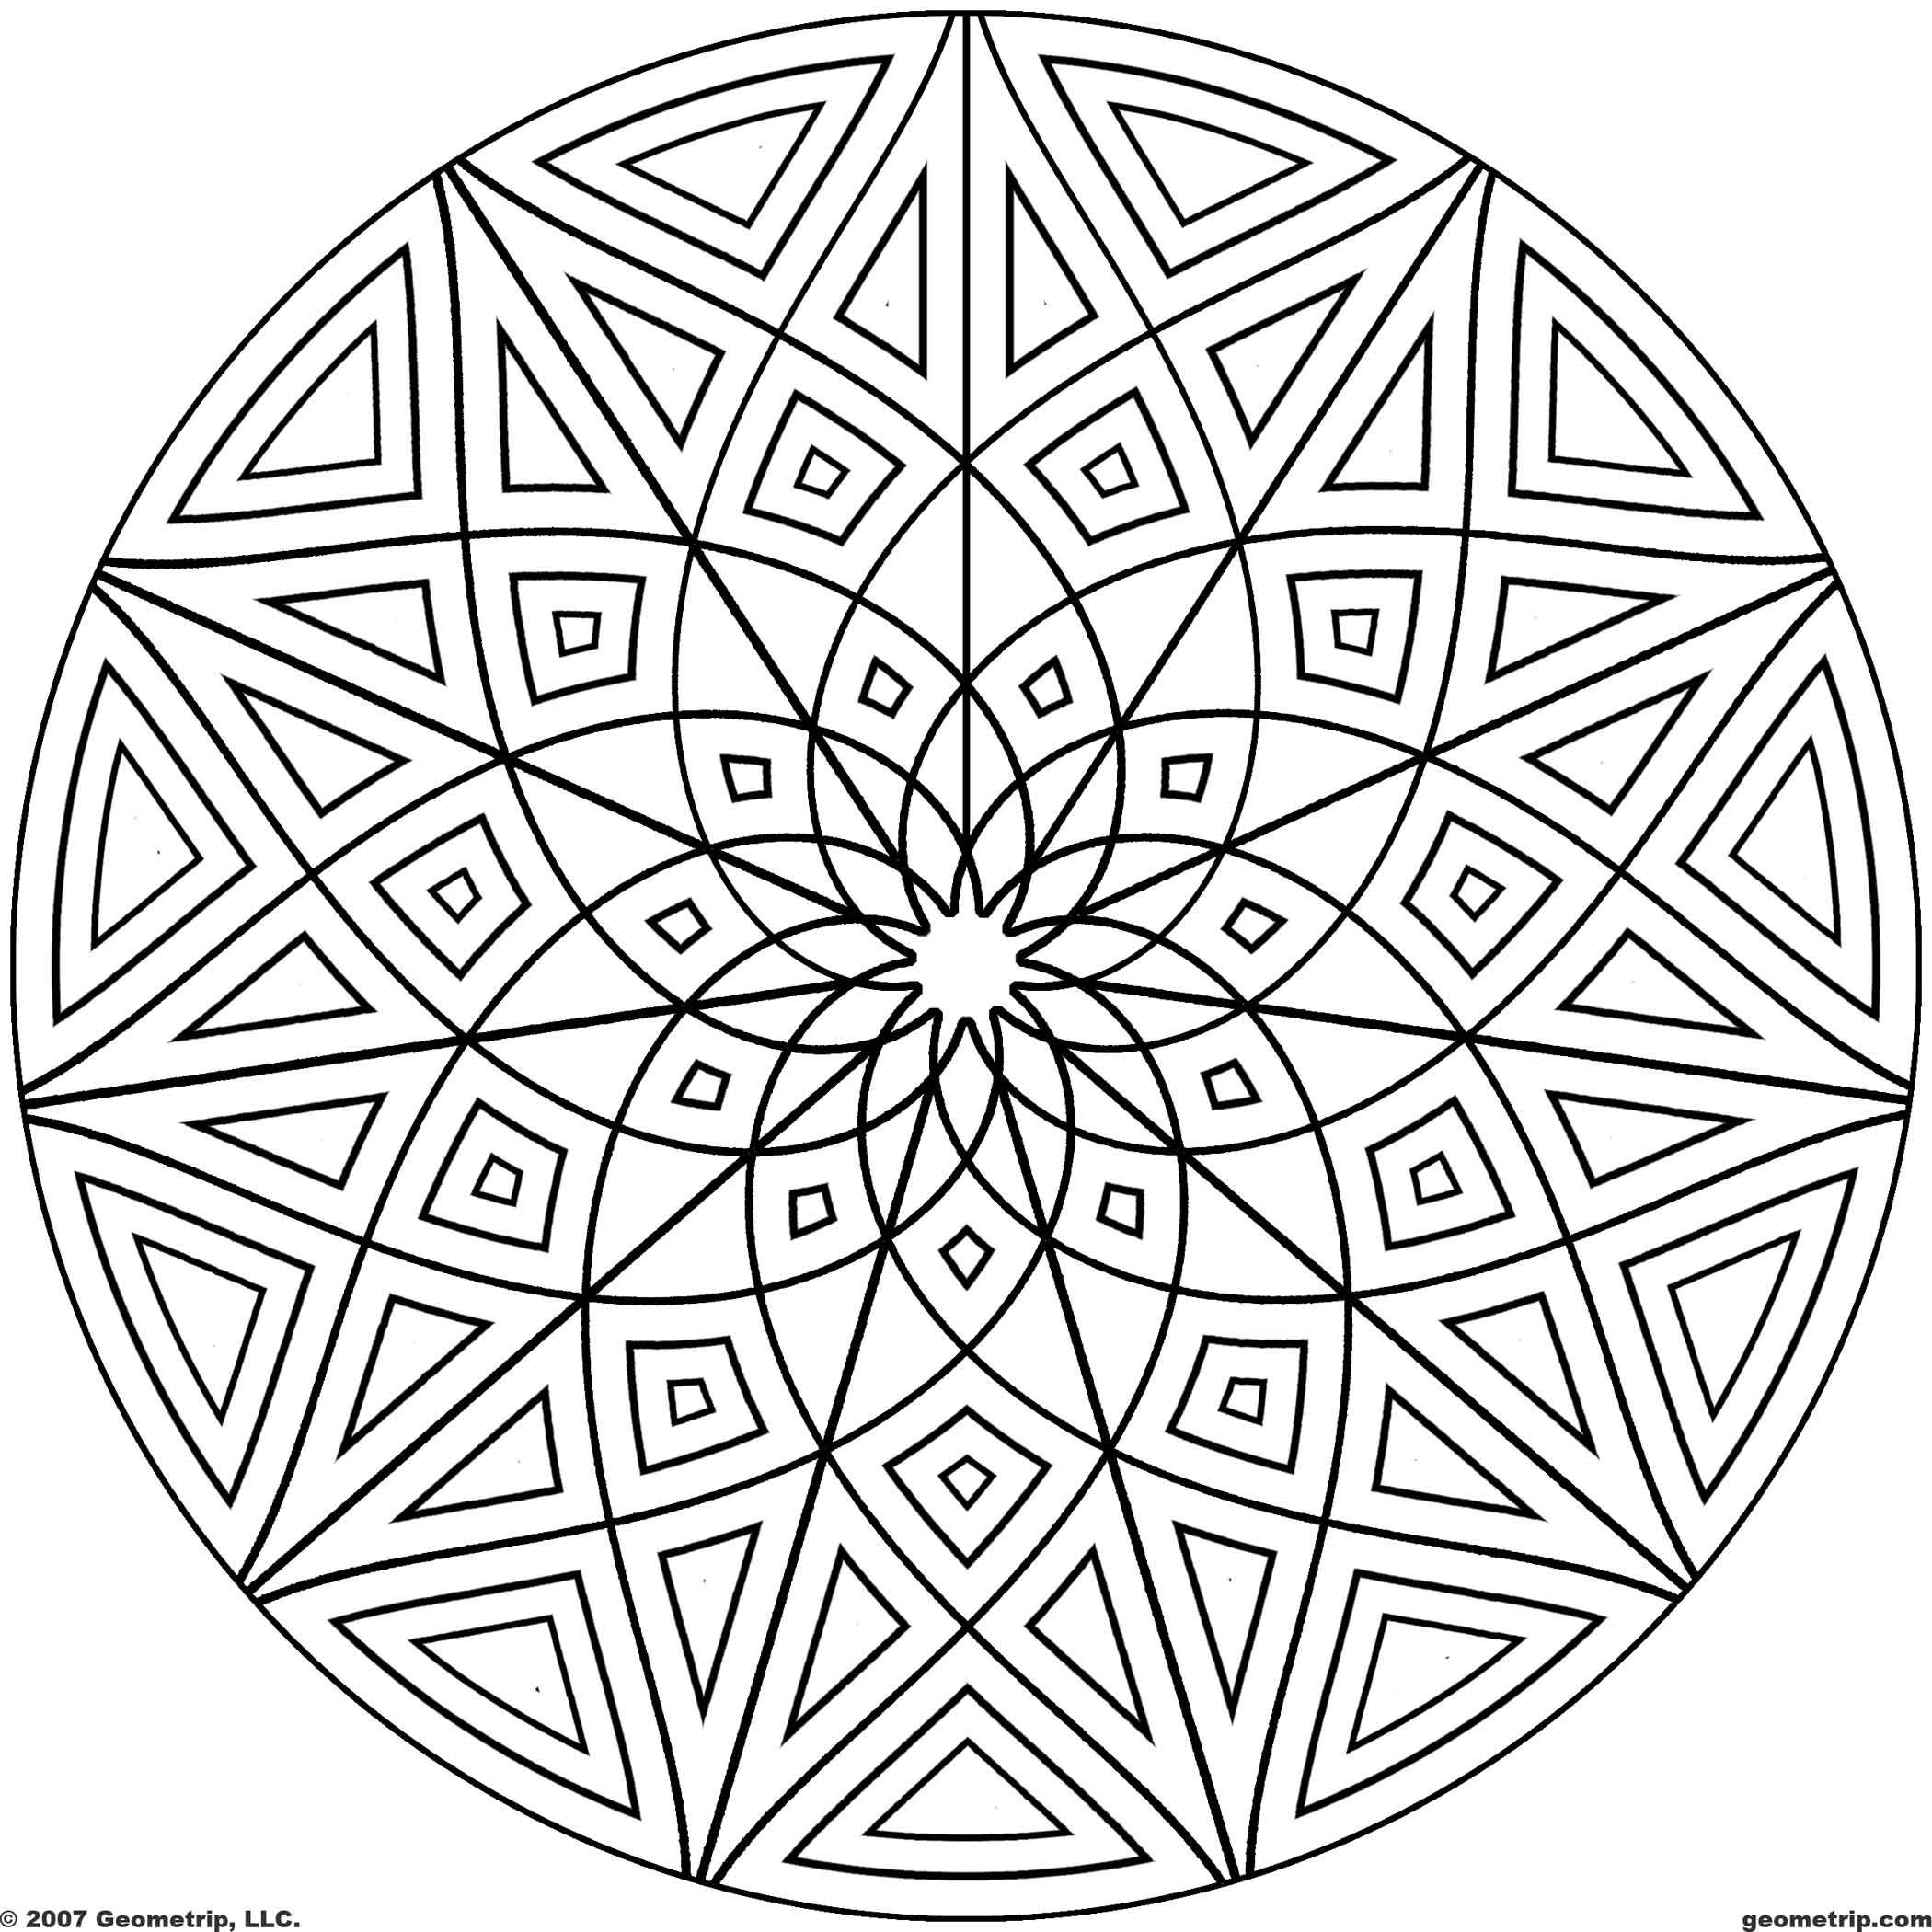 Kaleidoscope Coloring Pages Geometrip